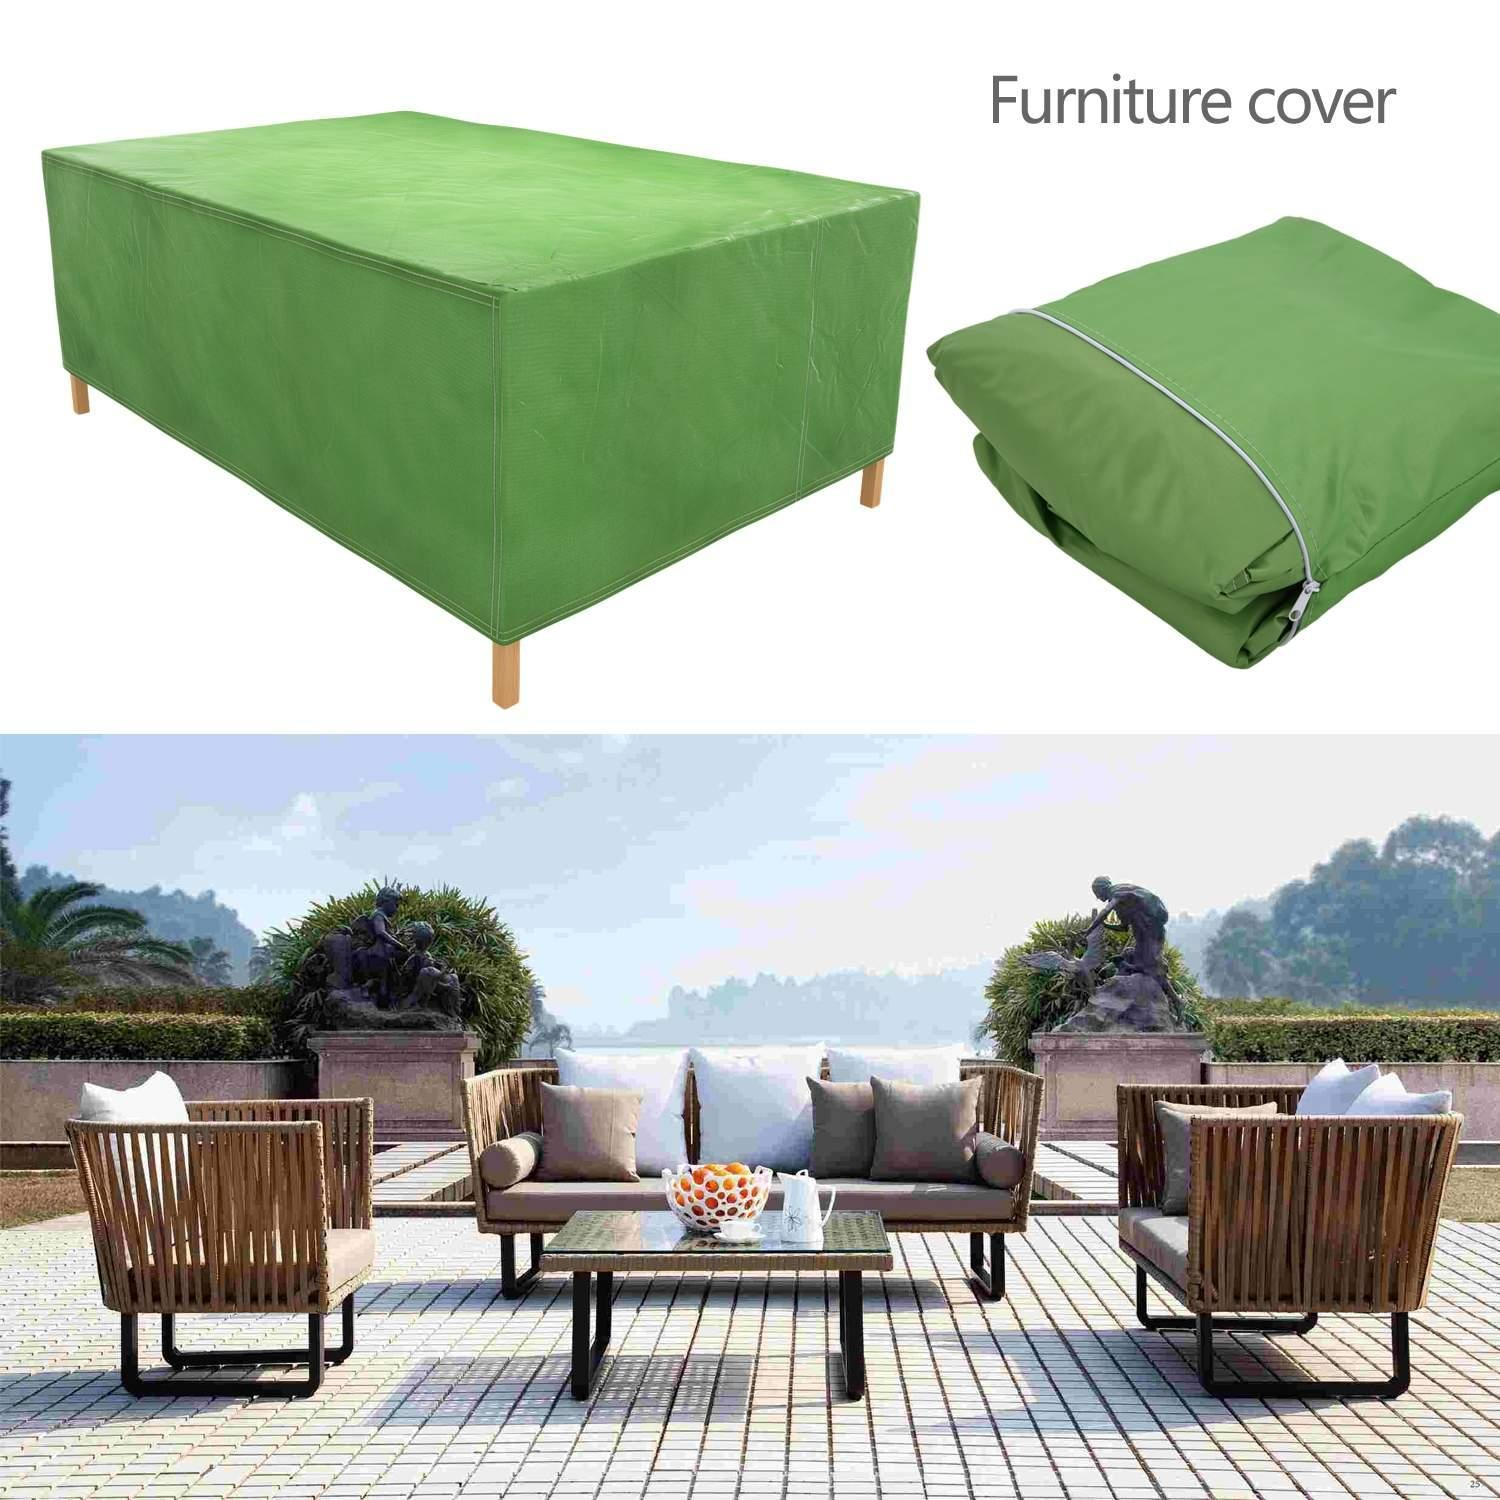 Cosway Furniture Set Covers, 106.3 x 70.9 x 35.0inch Patio Furniture Cover Water Resistant Durable Outdoor Table and Chair Cover Rectangle (Green)